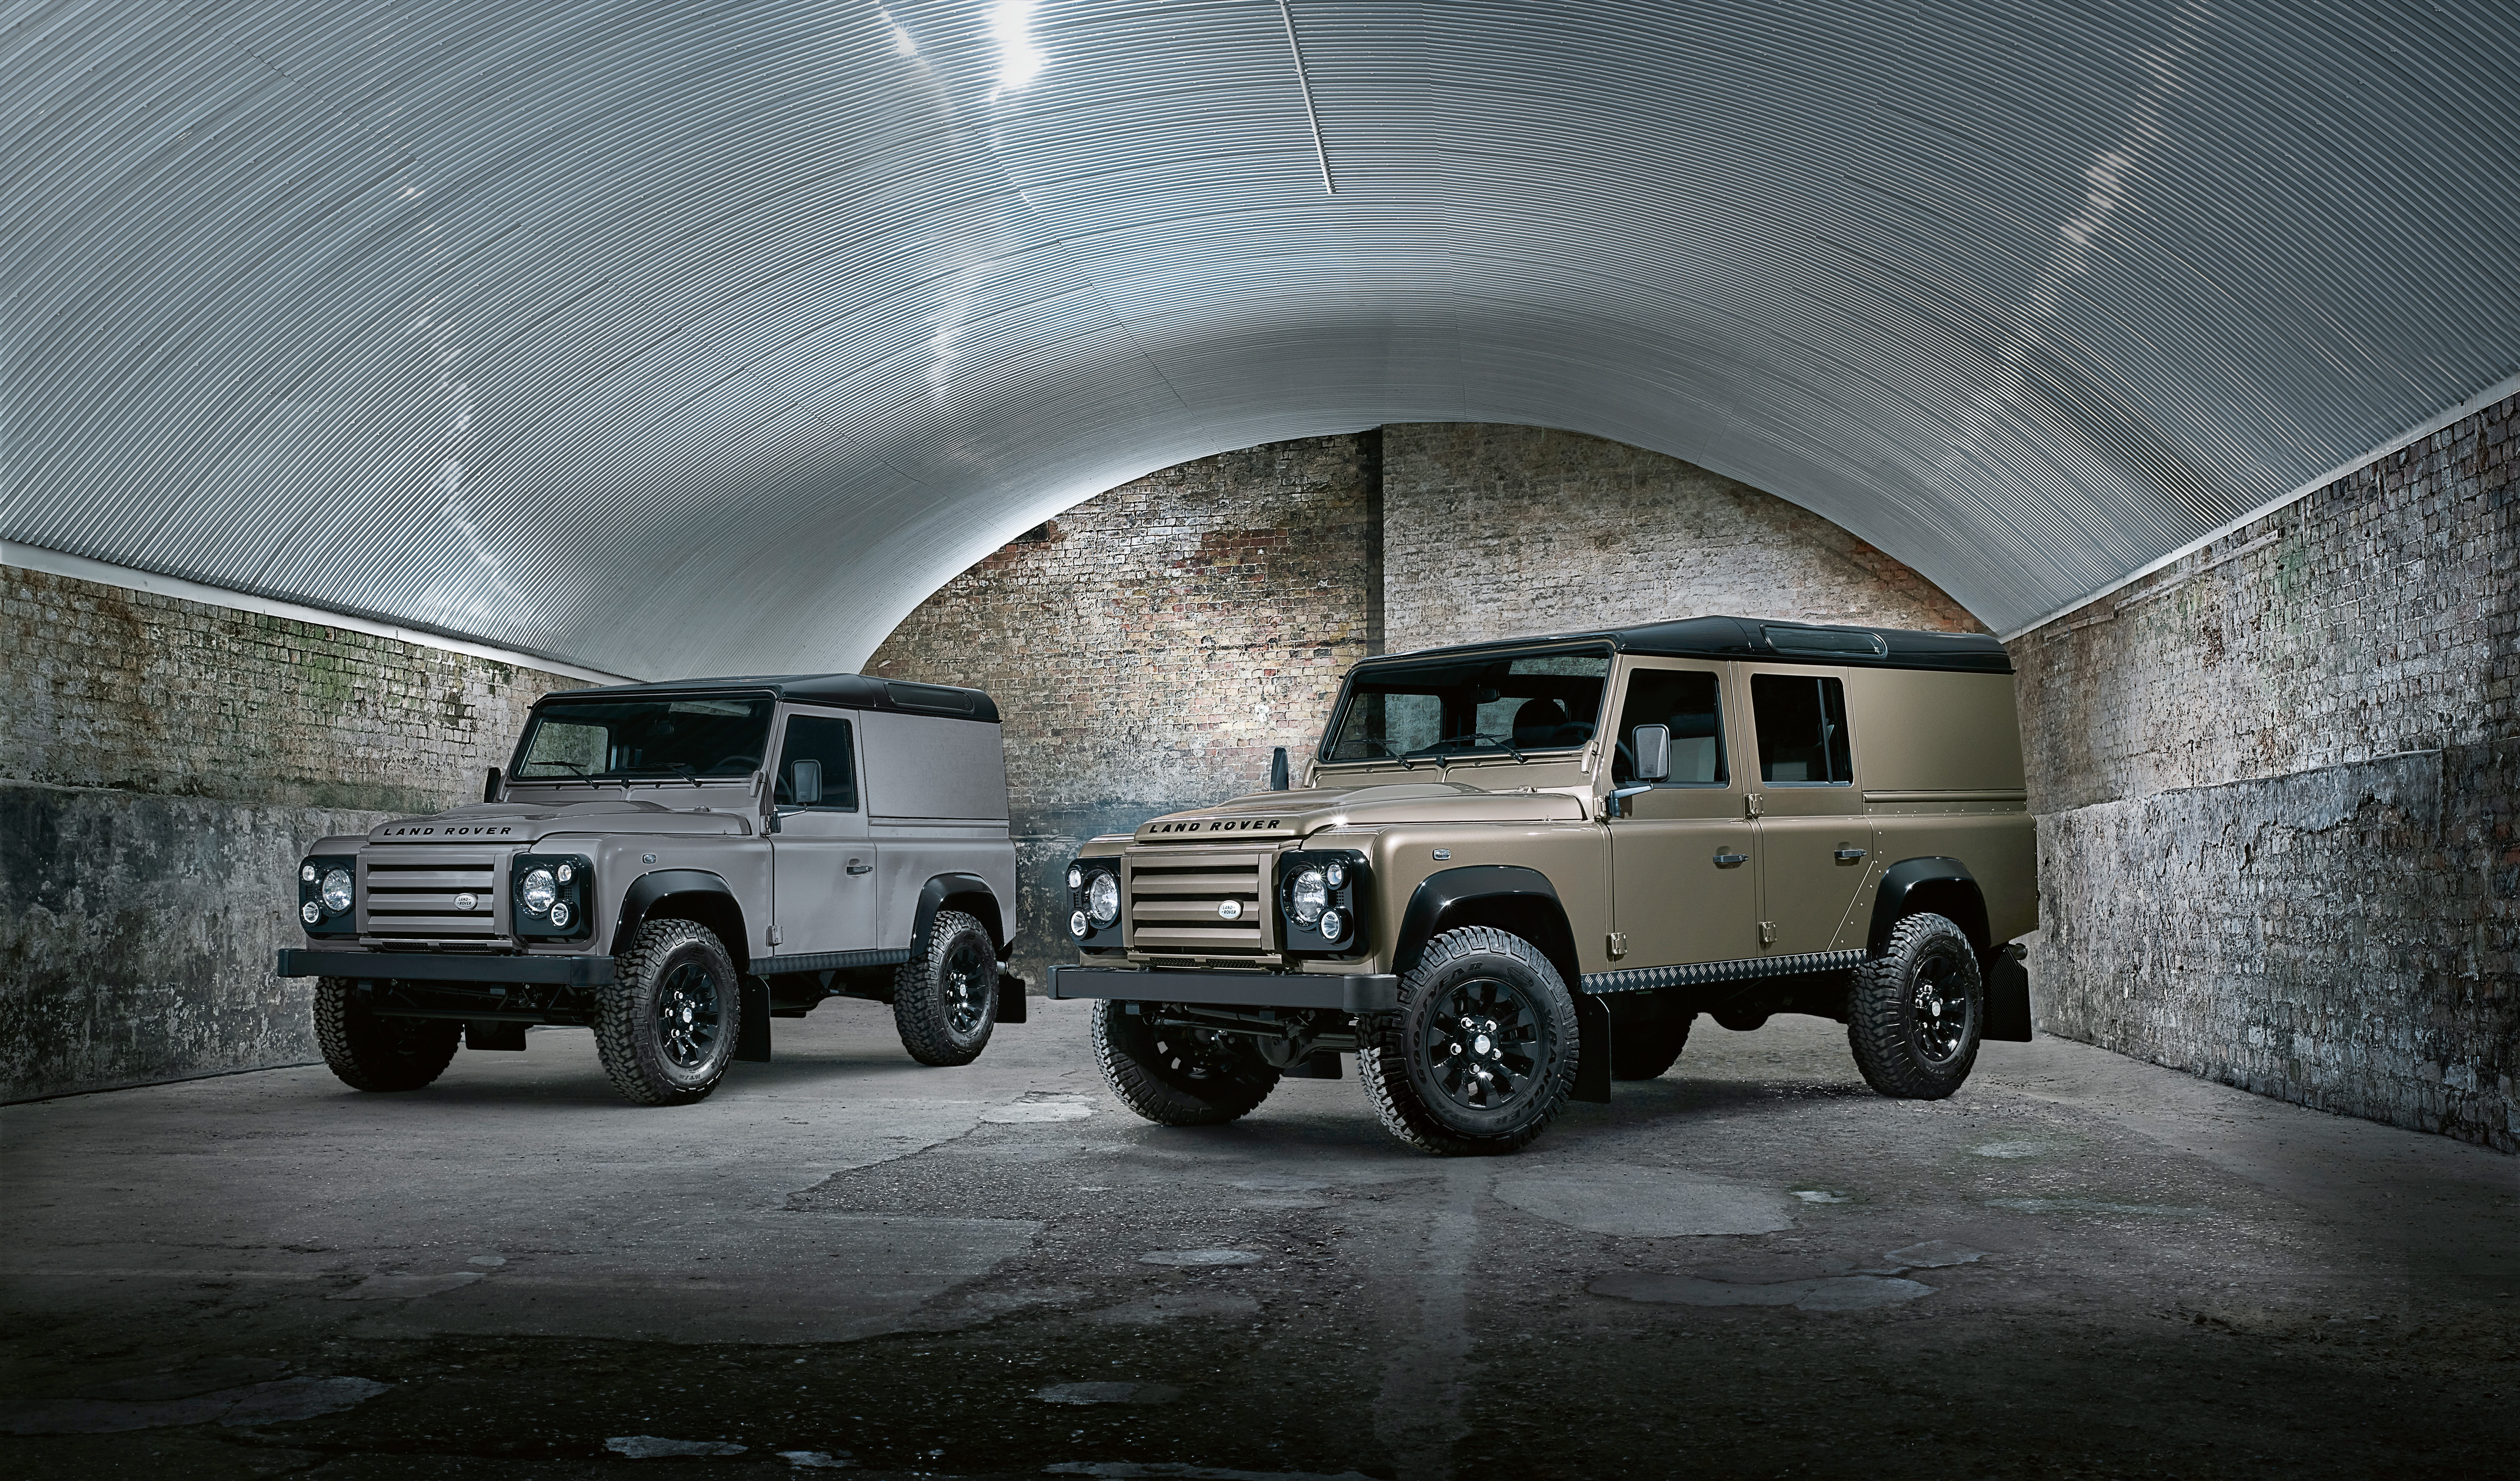 htm landrover details up defender home land london stock carsales swb pick hampshire used rover near surrey